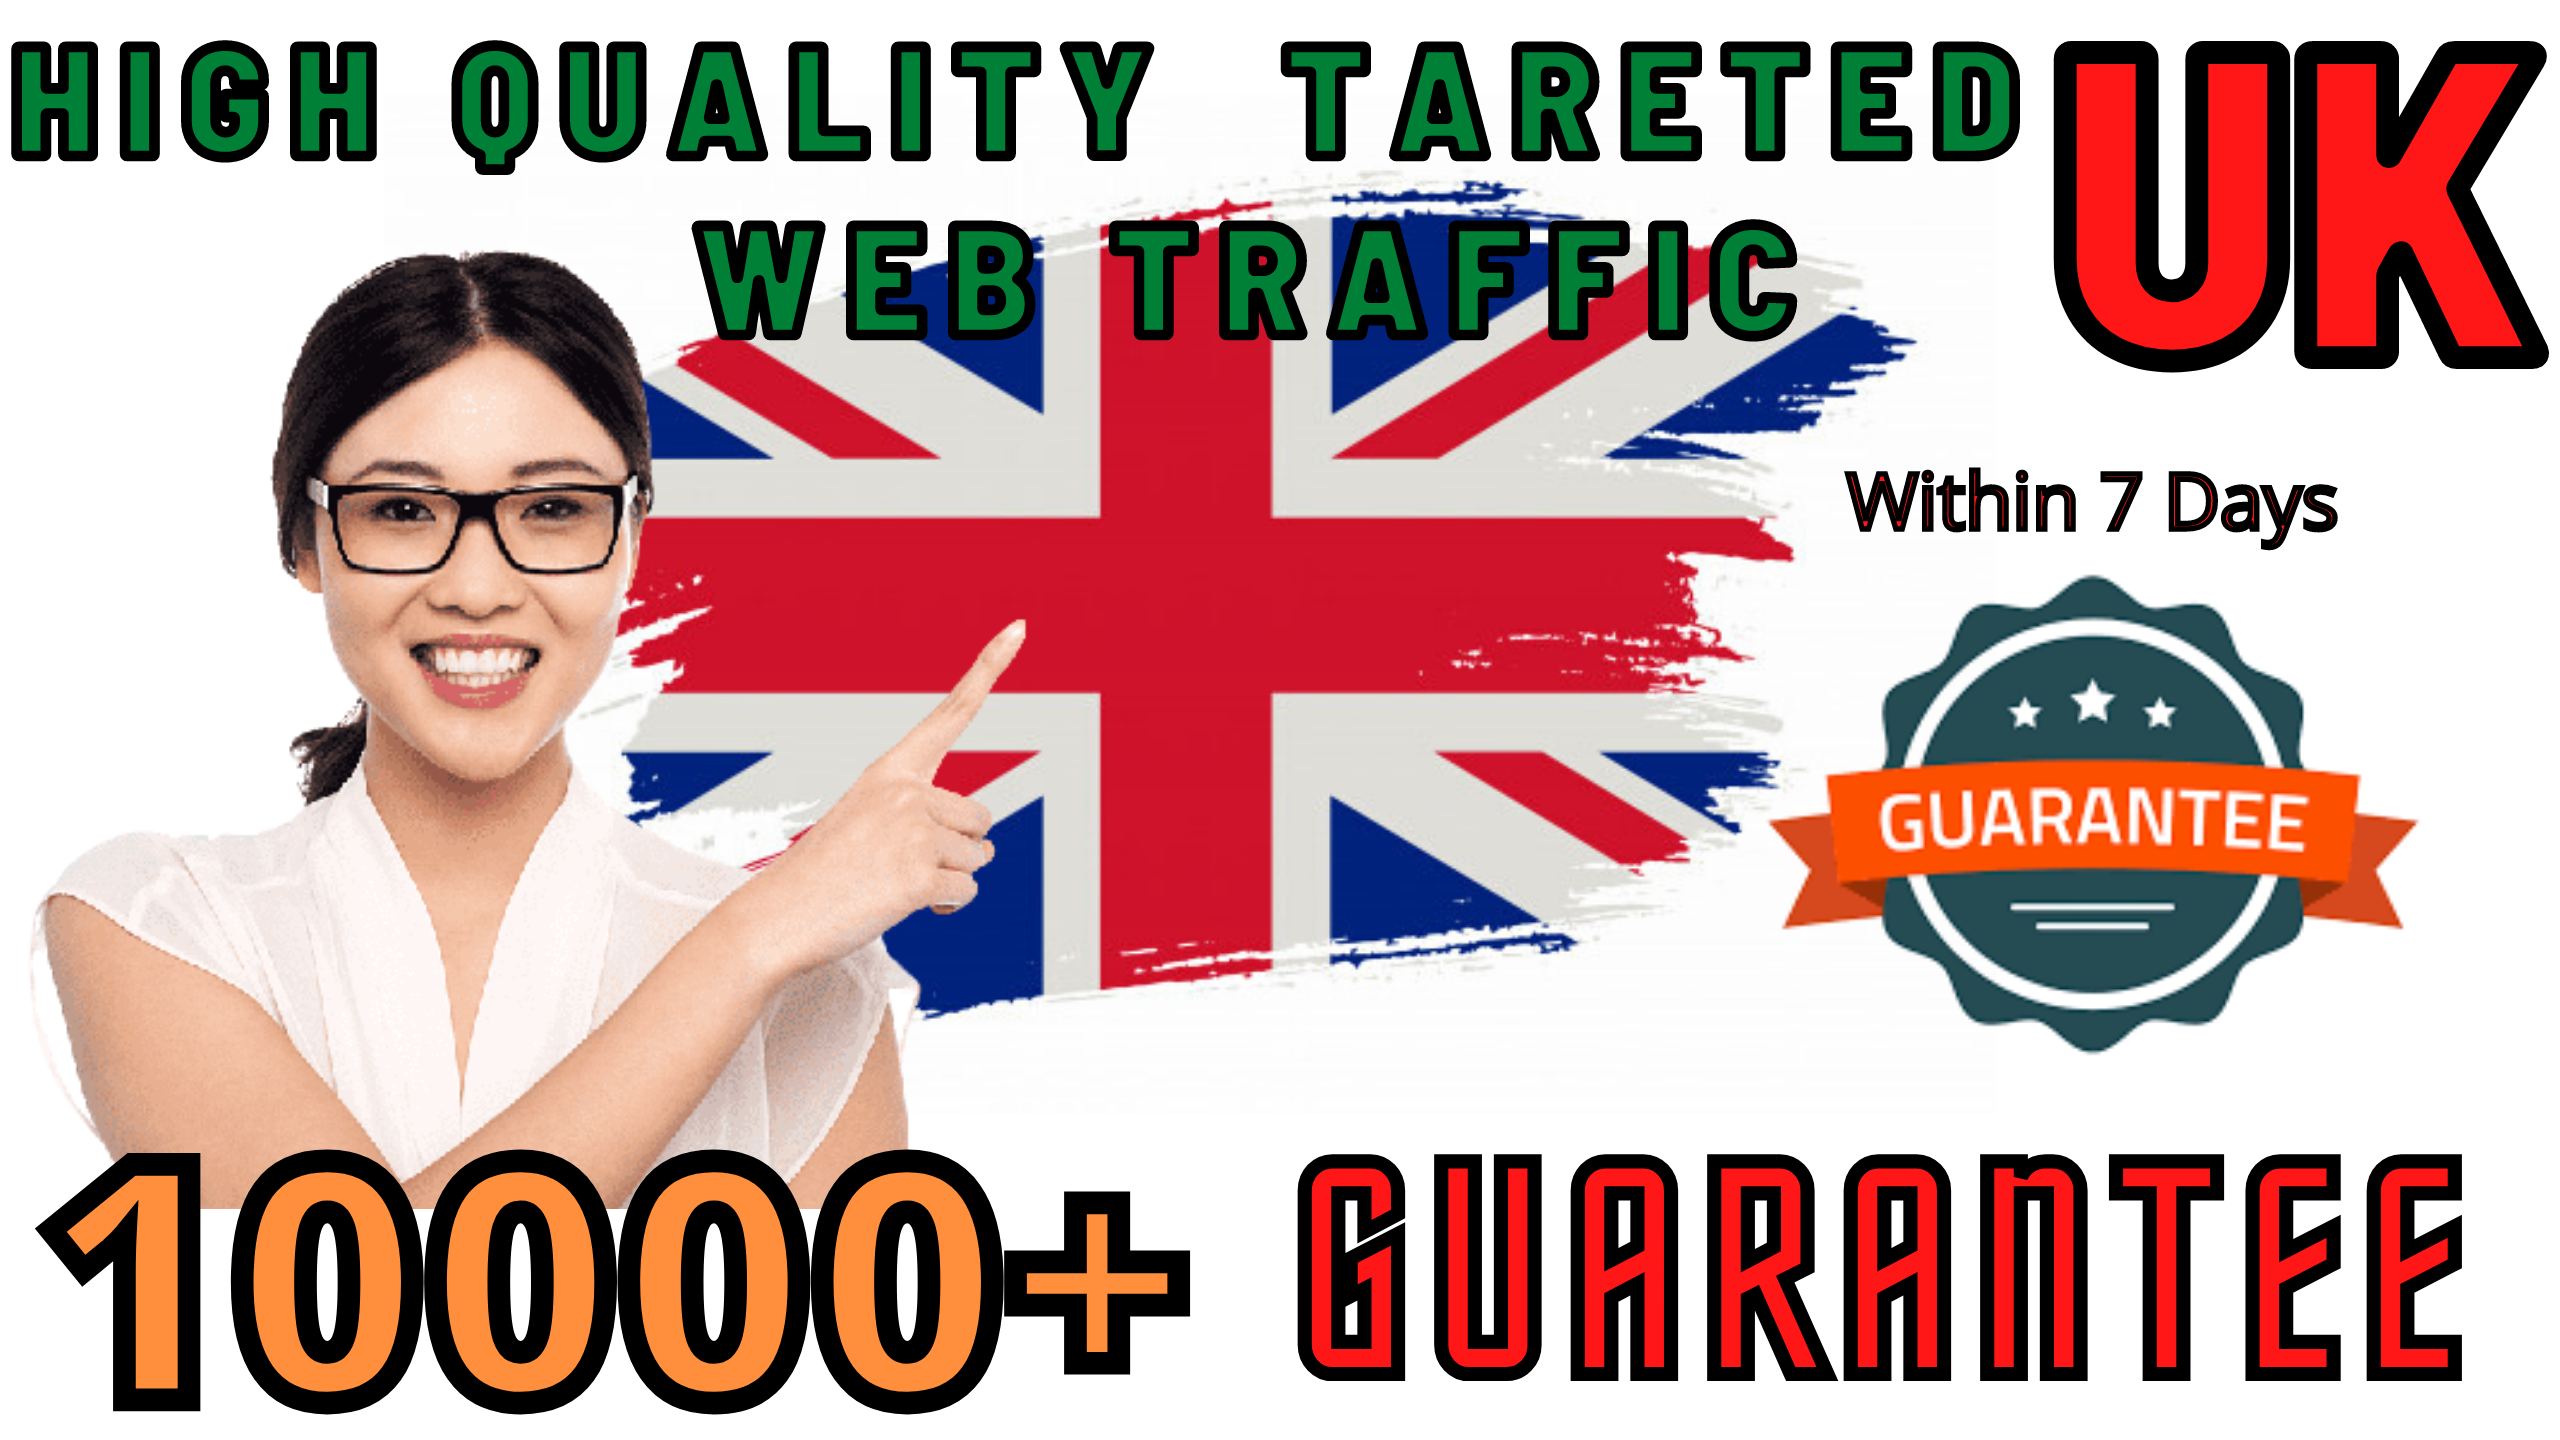 Send 10000 UK TARGETED REAL Web Traffic to your web or blog site within 7 days